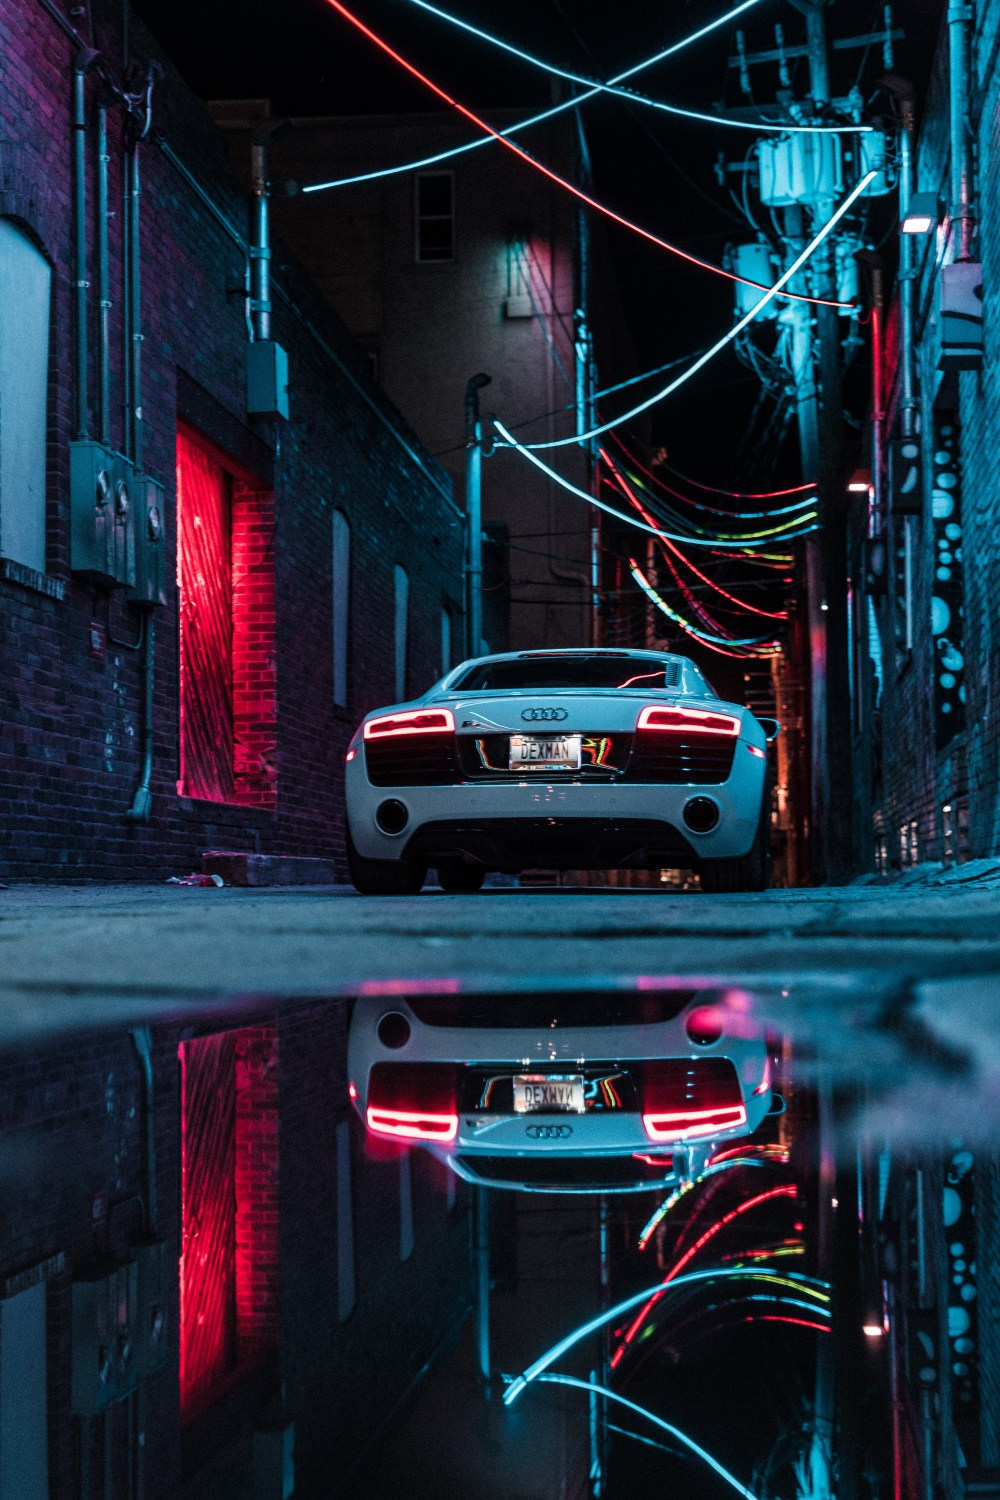 Here you will find wallpapers to go along with your new gadgets and devices. 750 Supercar Pictures Hd Download Free Images On Unsplash